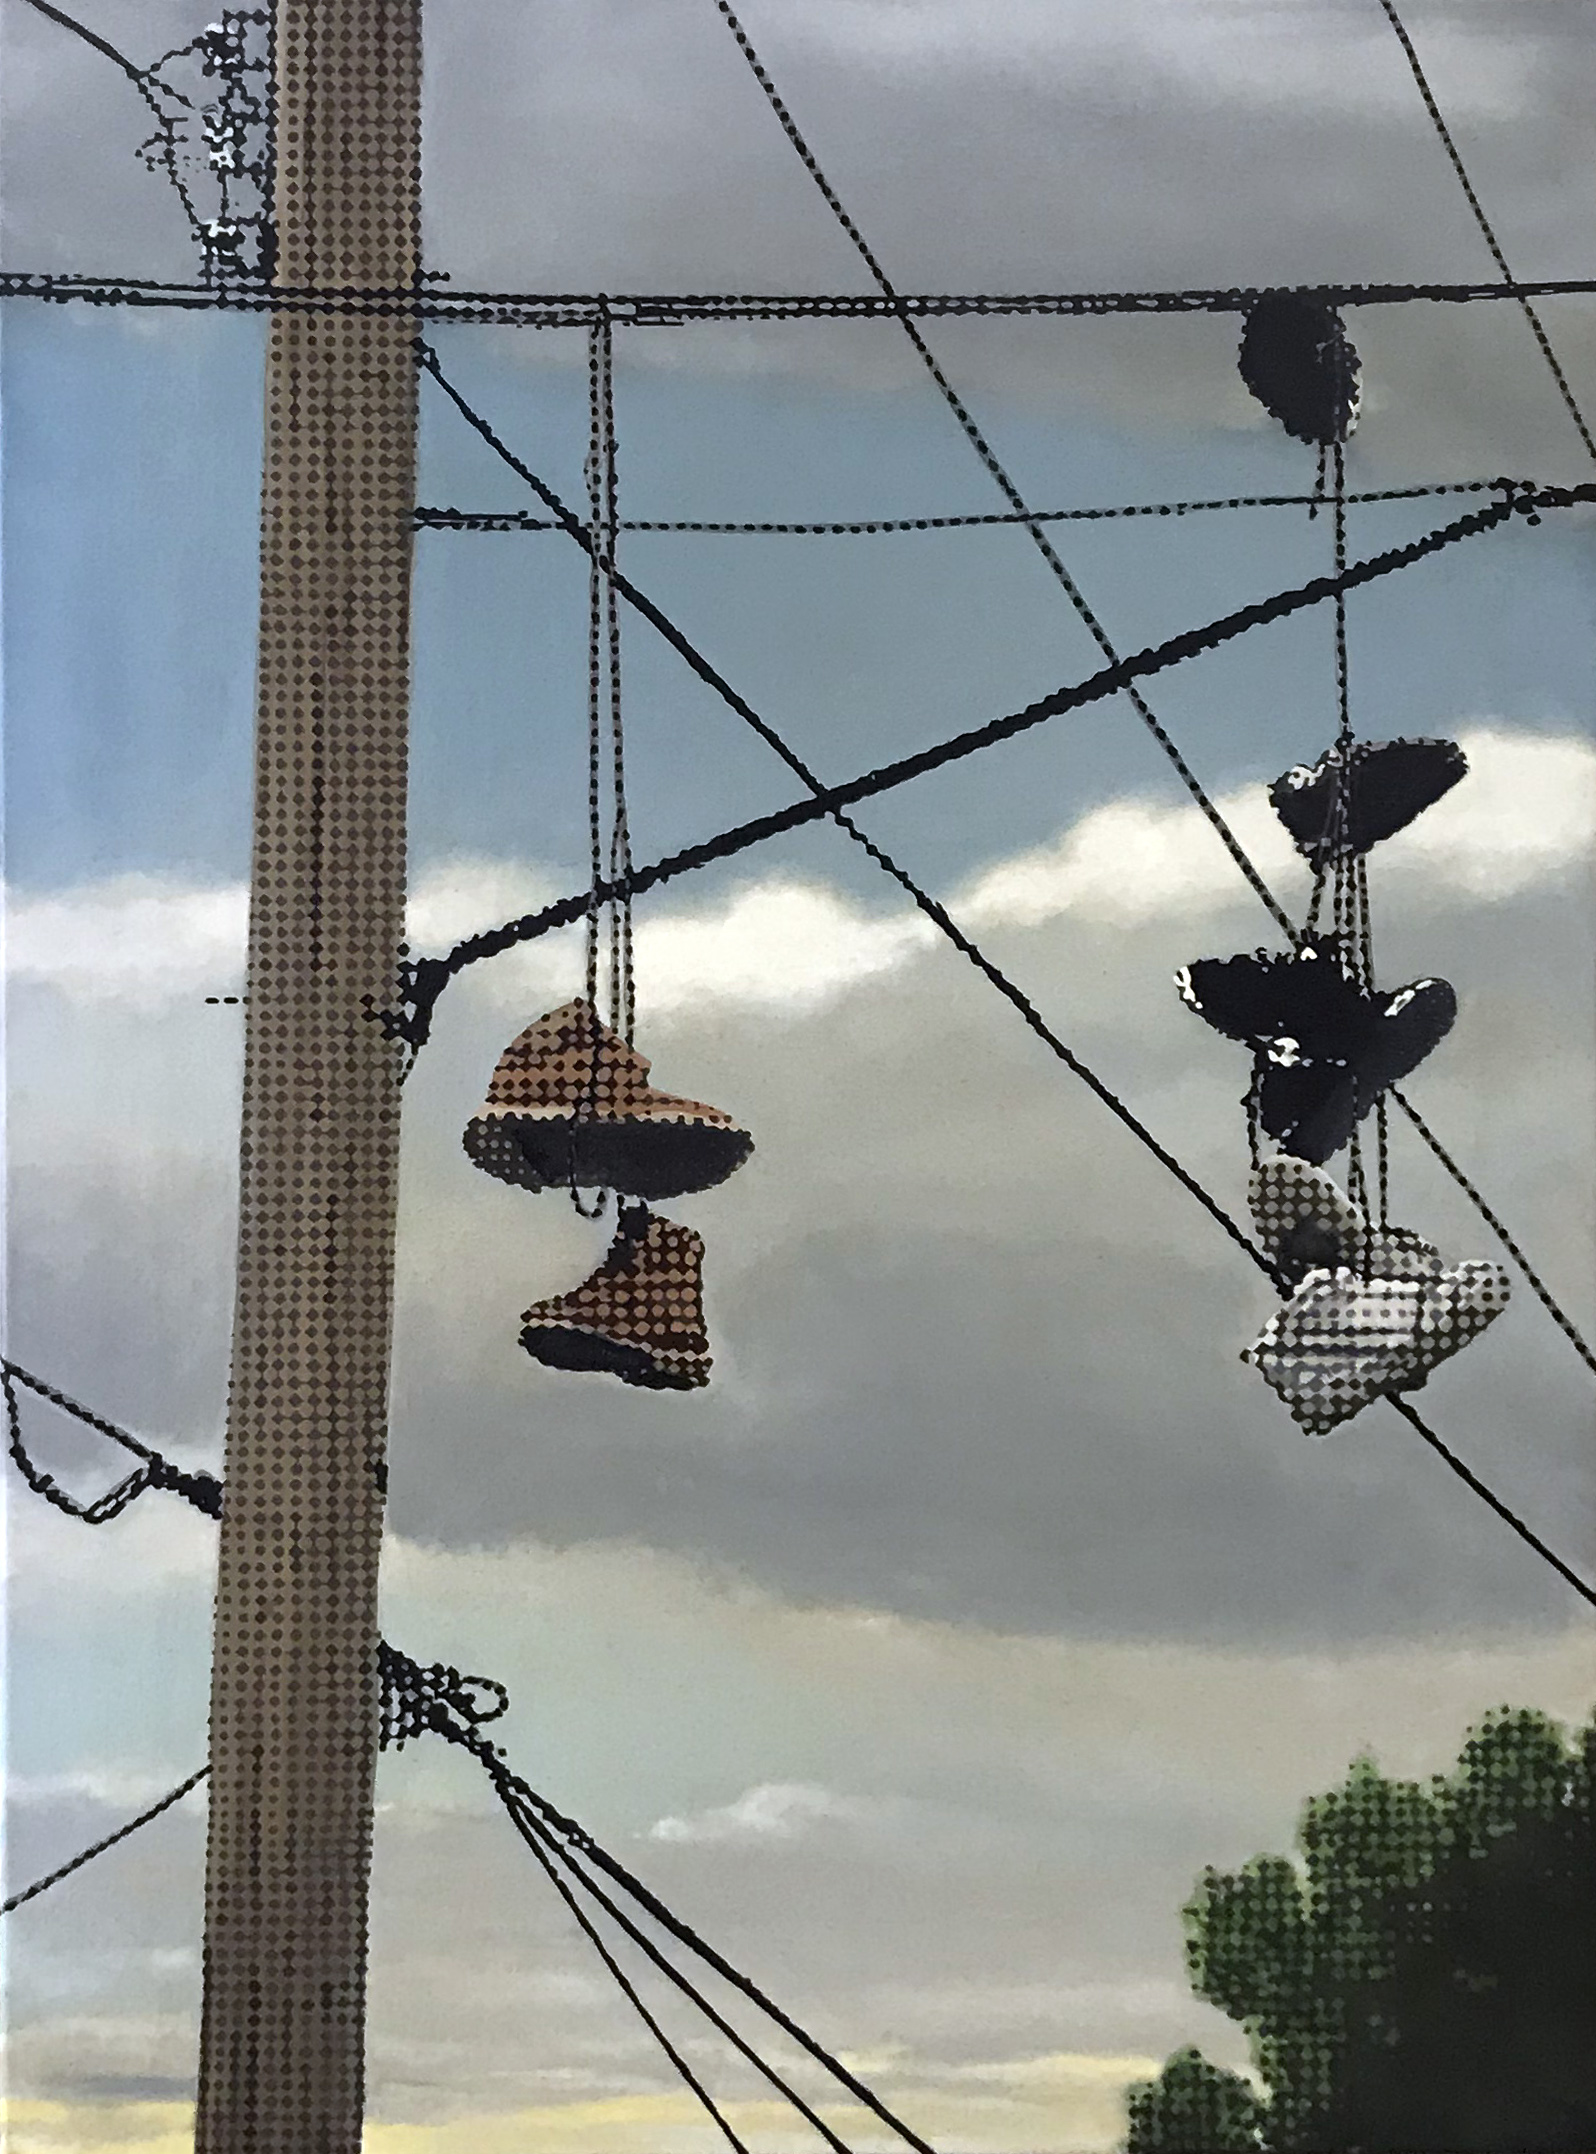 Marc de Jong, Shoefiti 2 oil on canvas, 76 x 107 cm, available